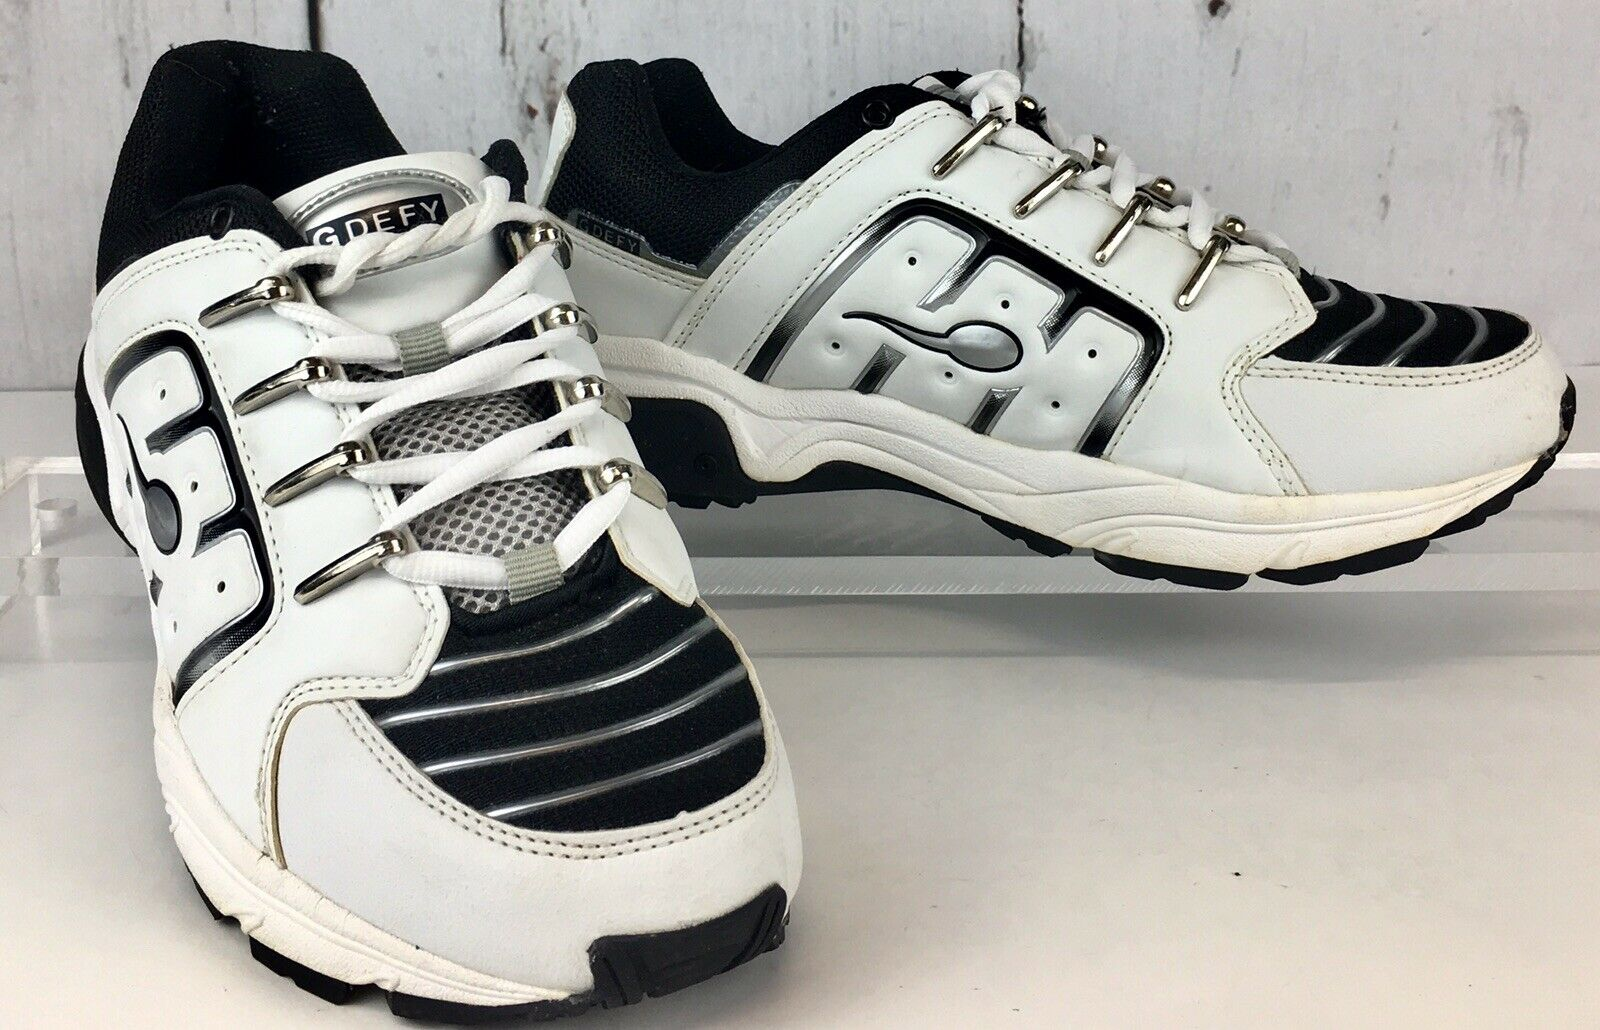 Men's Gravity Defyer Pain Relief Athletic shoes, White Sz 6 1 2M, Barely Pre-Own